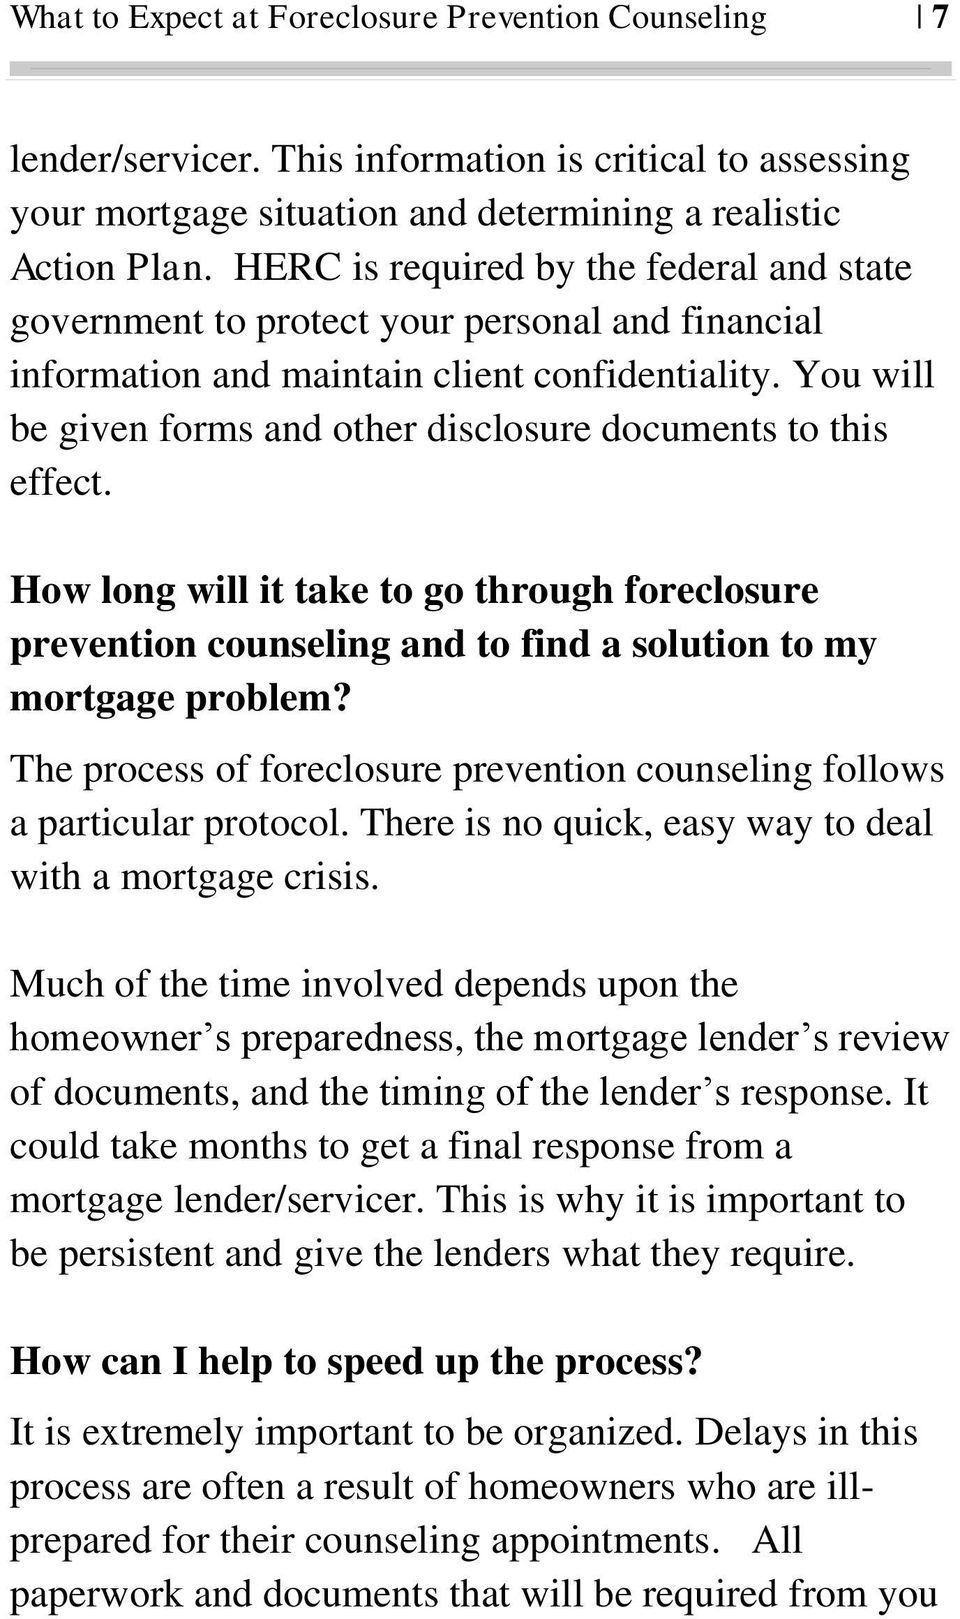 You will be given forms and other disclosure documents to this effect. How long will it take to go through foreclosure prevention counseling and to find a solution to my mortgage problem?